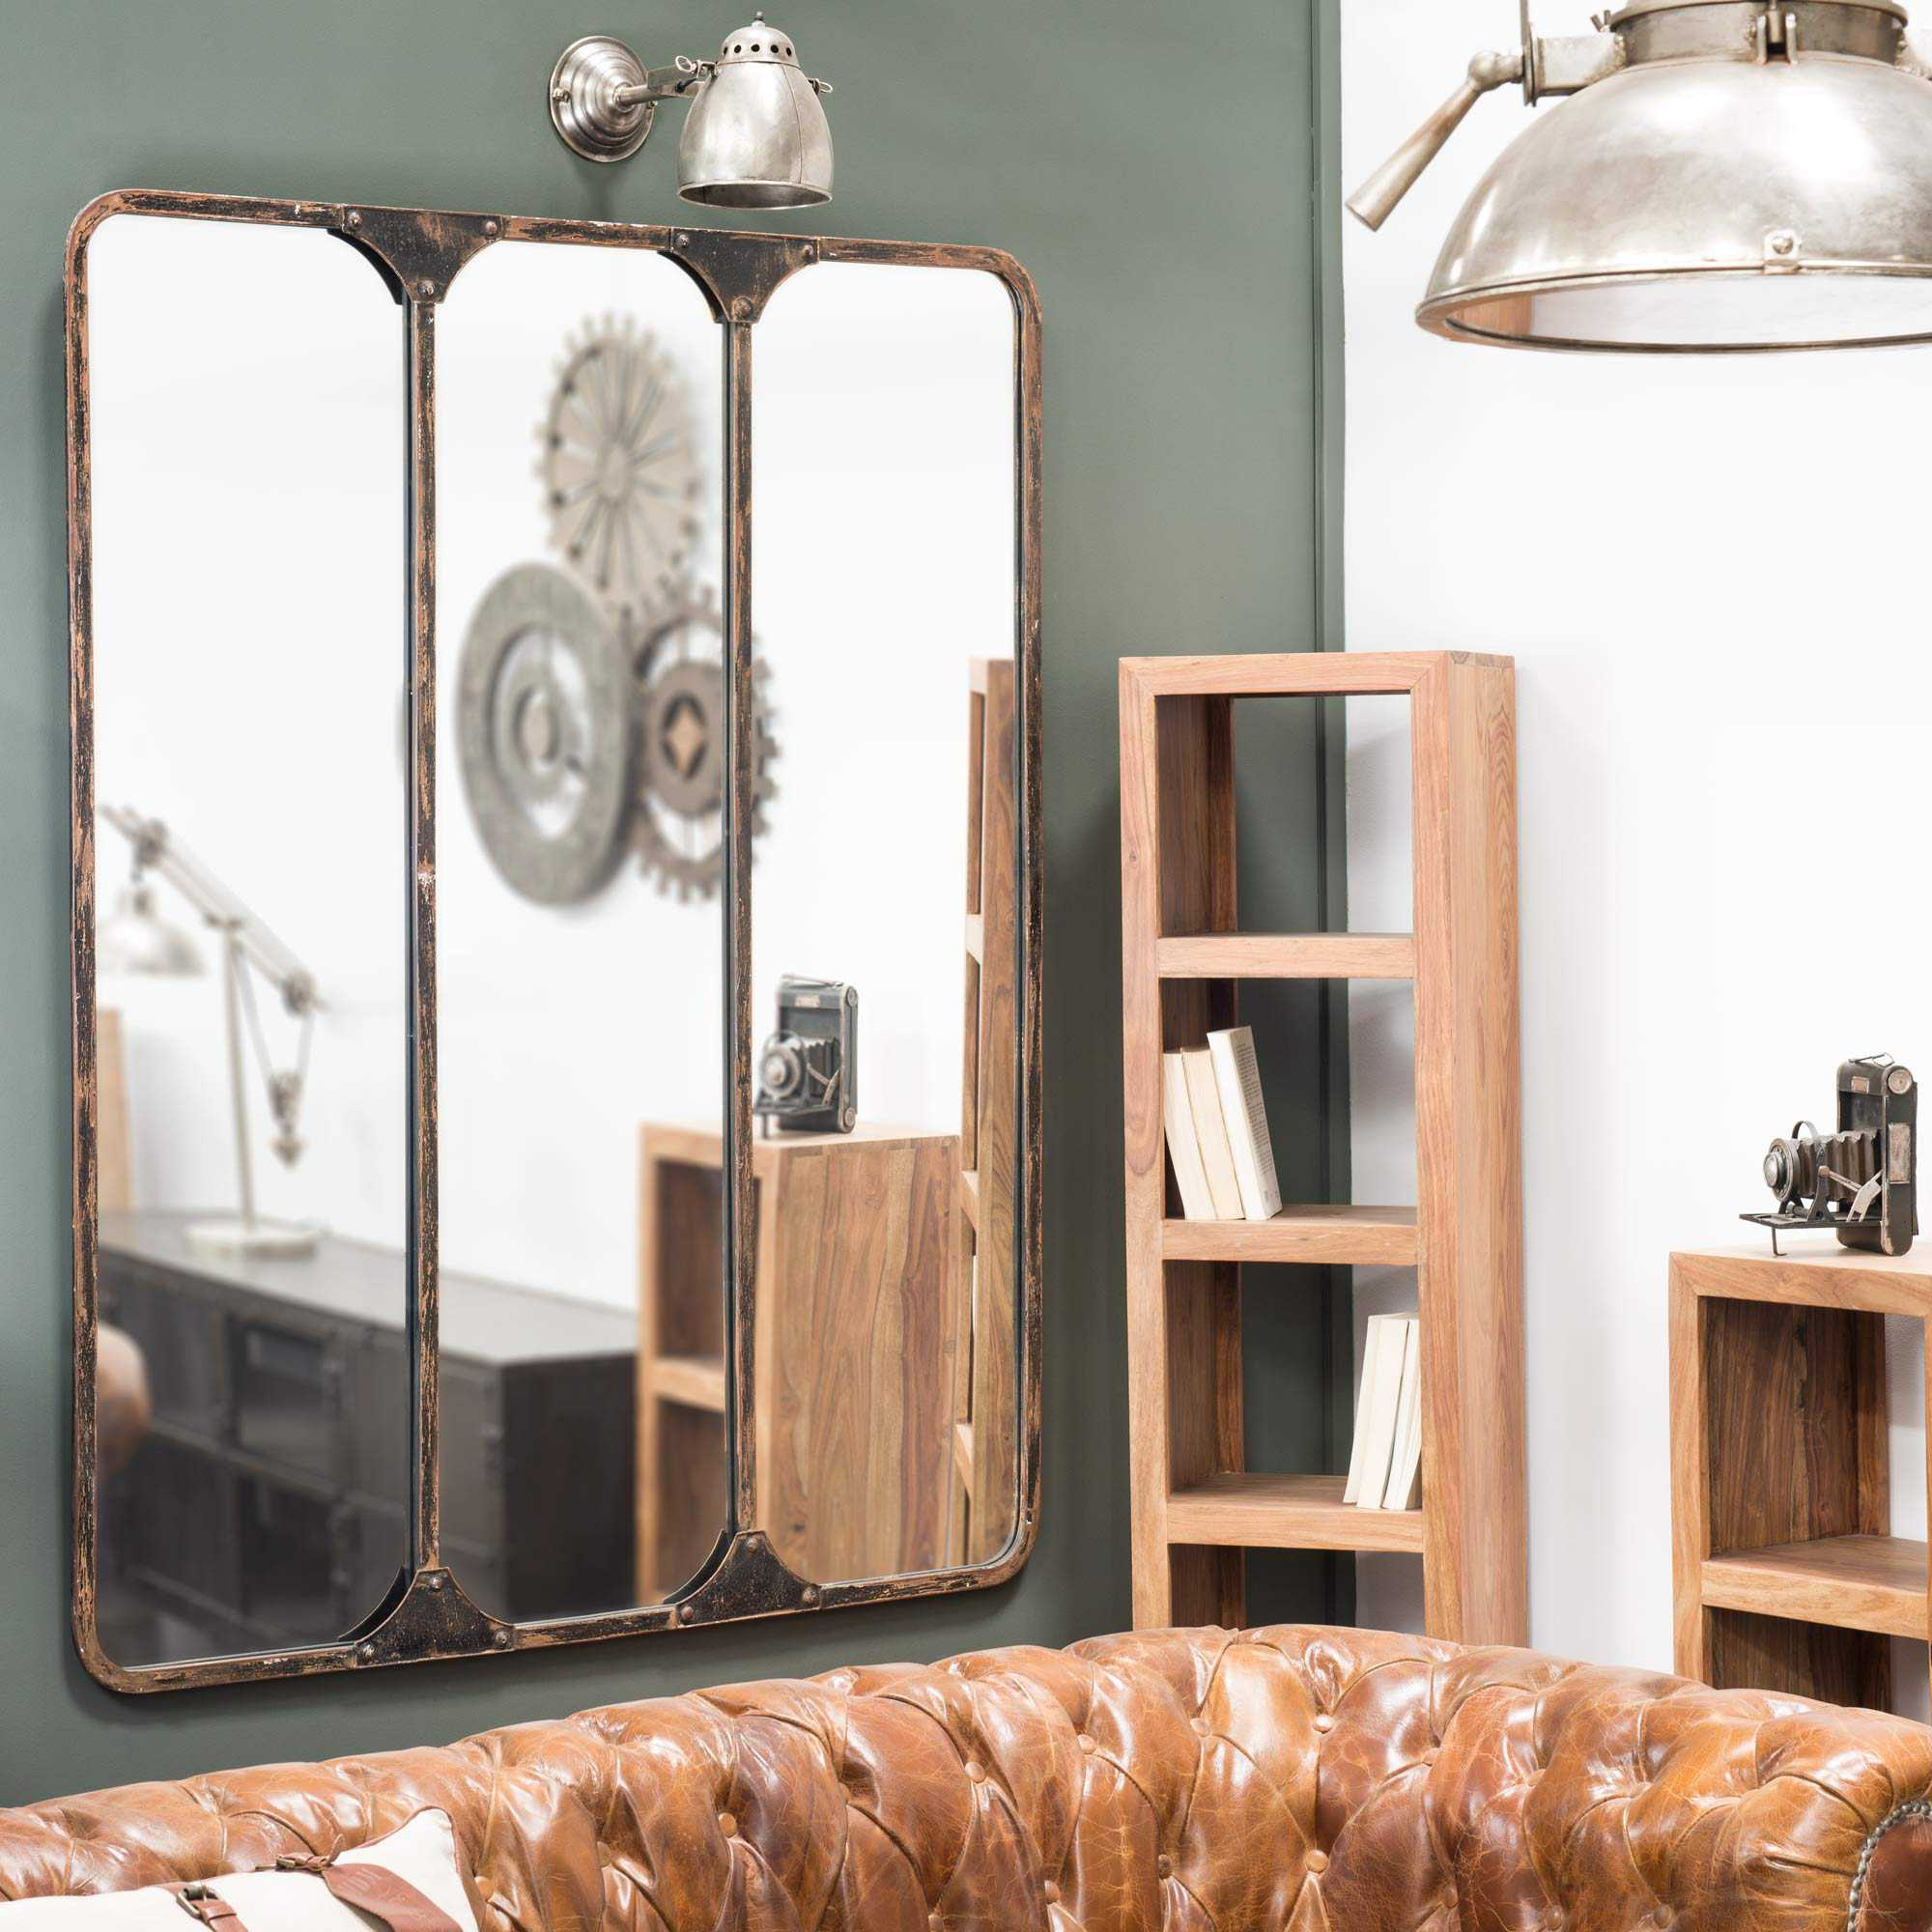 miroir verriere maison du monde id es de d coration int rieure french decor. Black Bedroom Furniture Sets. Home Design Ideas